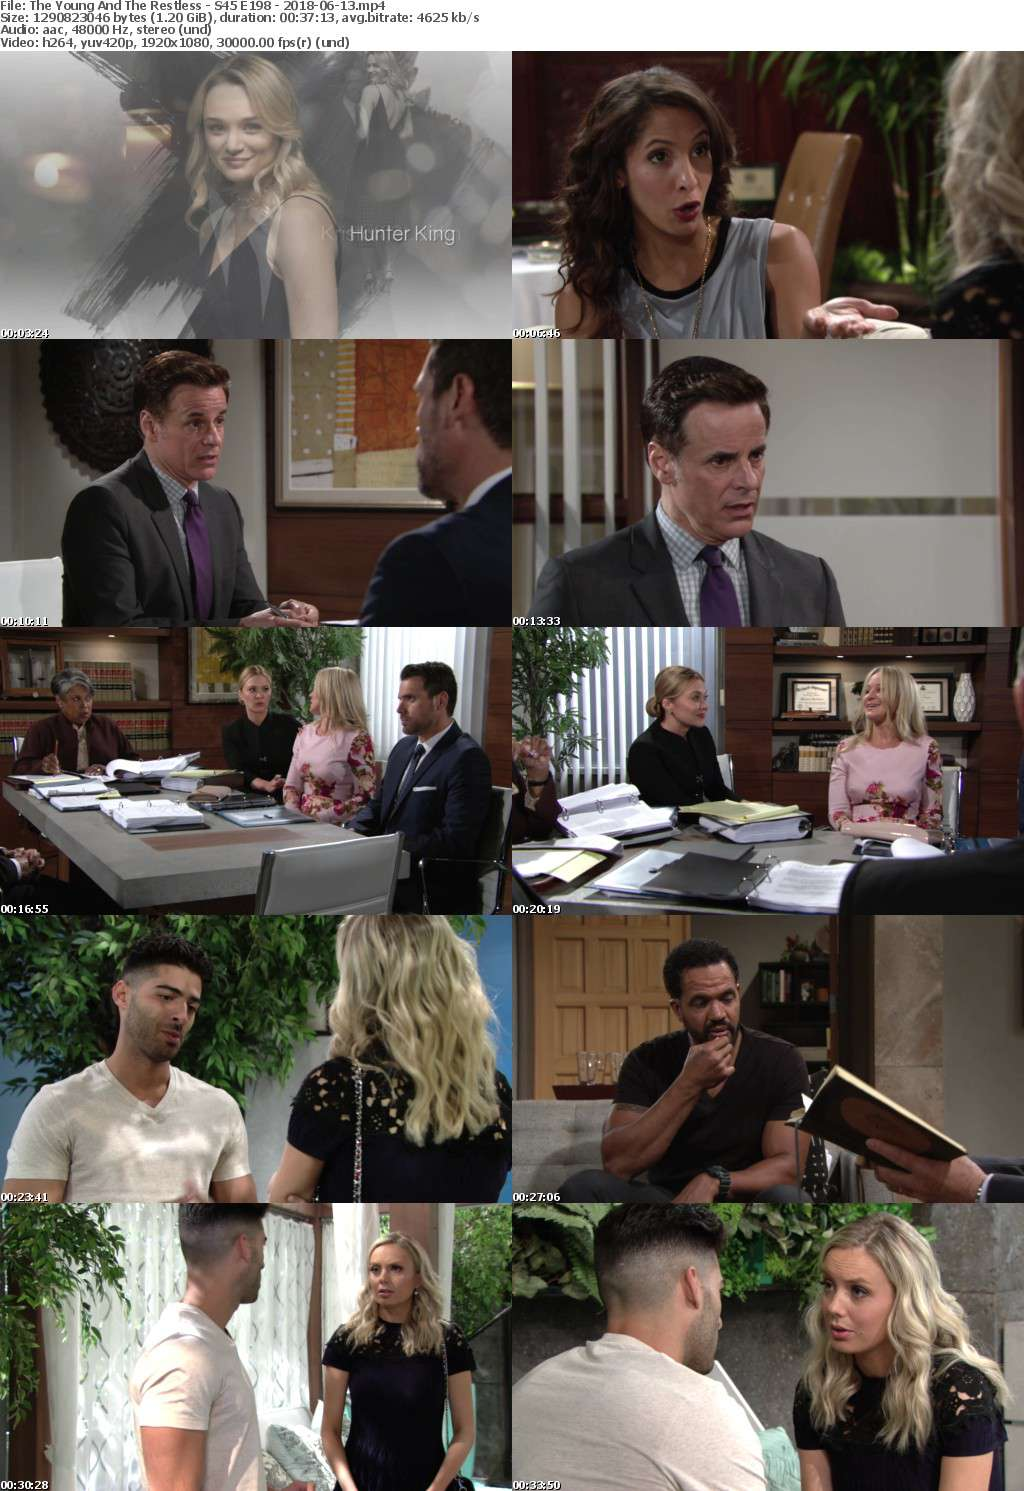 The Young And The Restless - S45 E198 - 2018-06-13